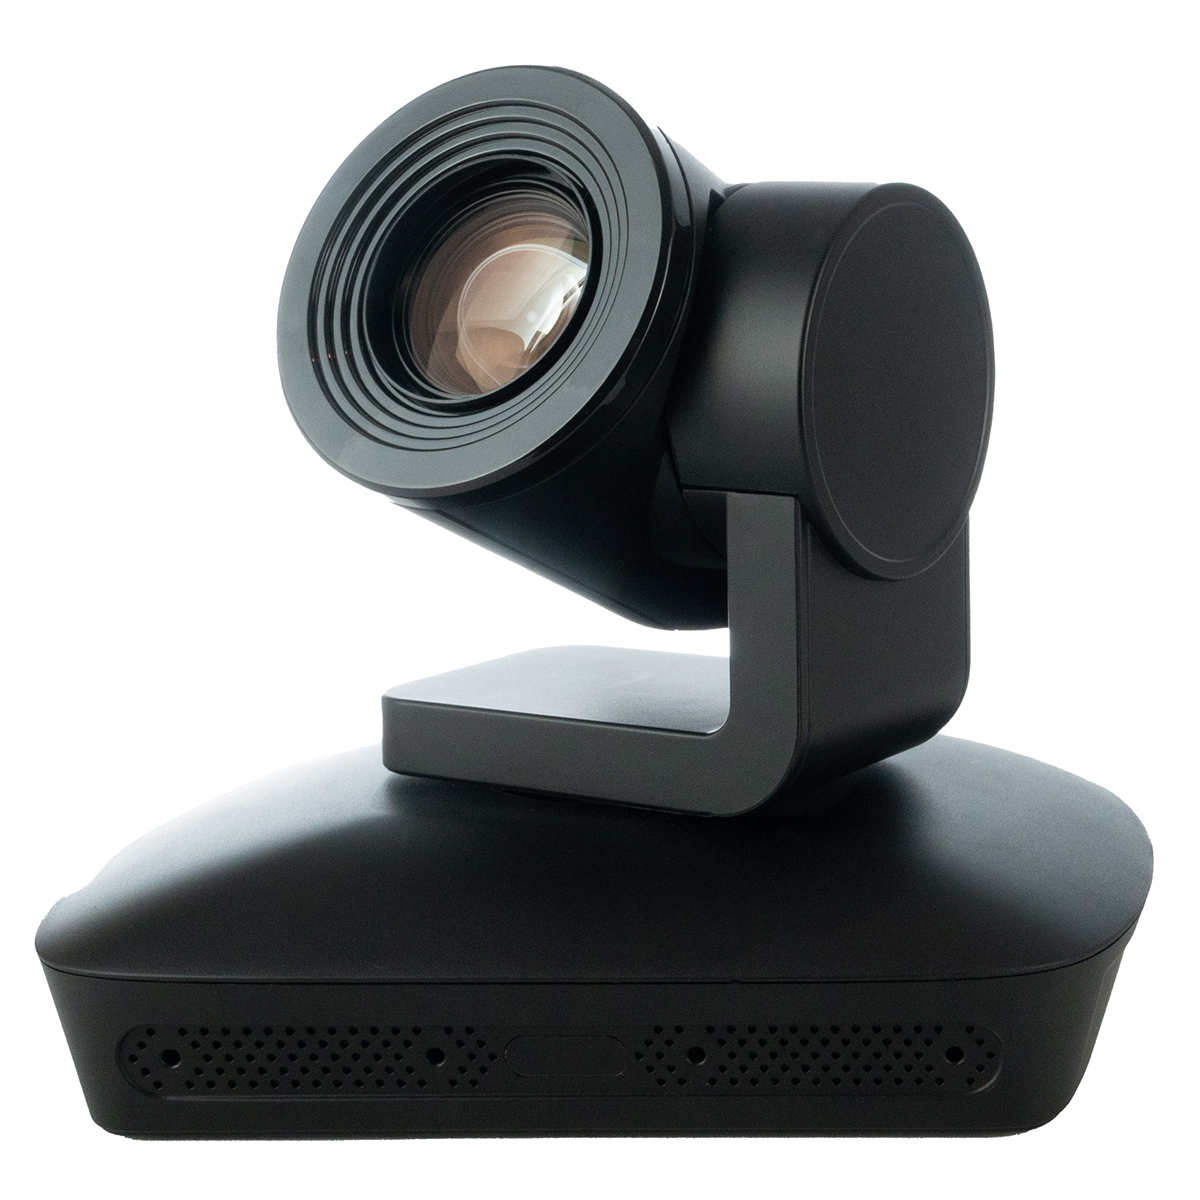 HiHo 5000W Full HD Colour Webcam with Voice Tracking